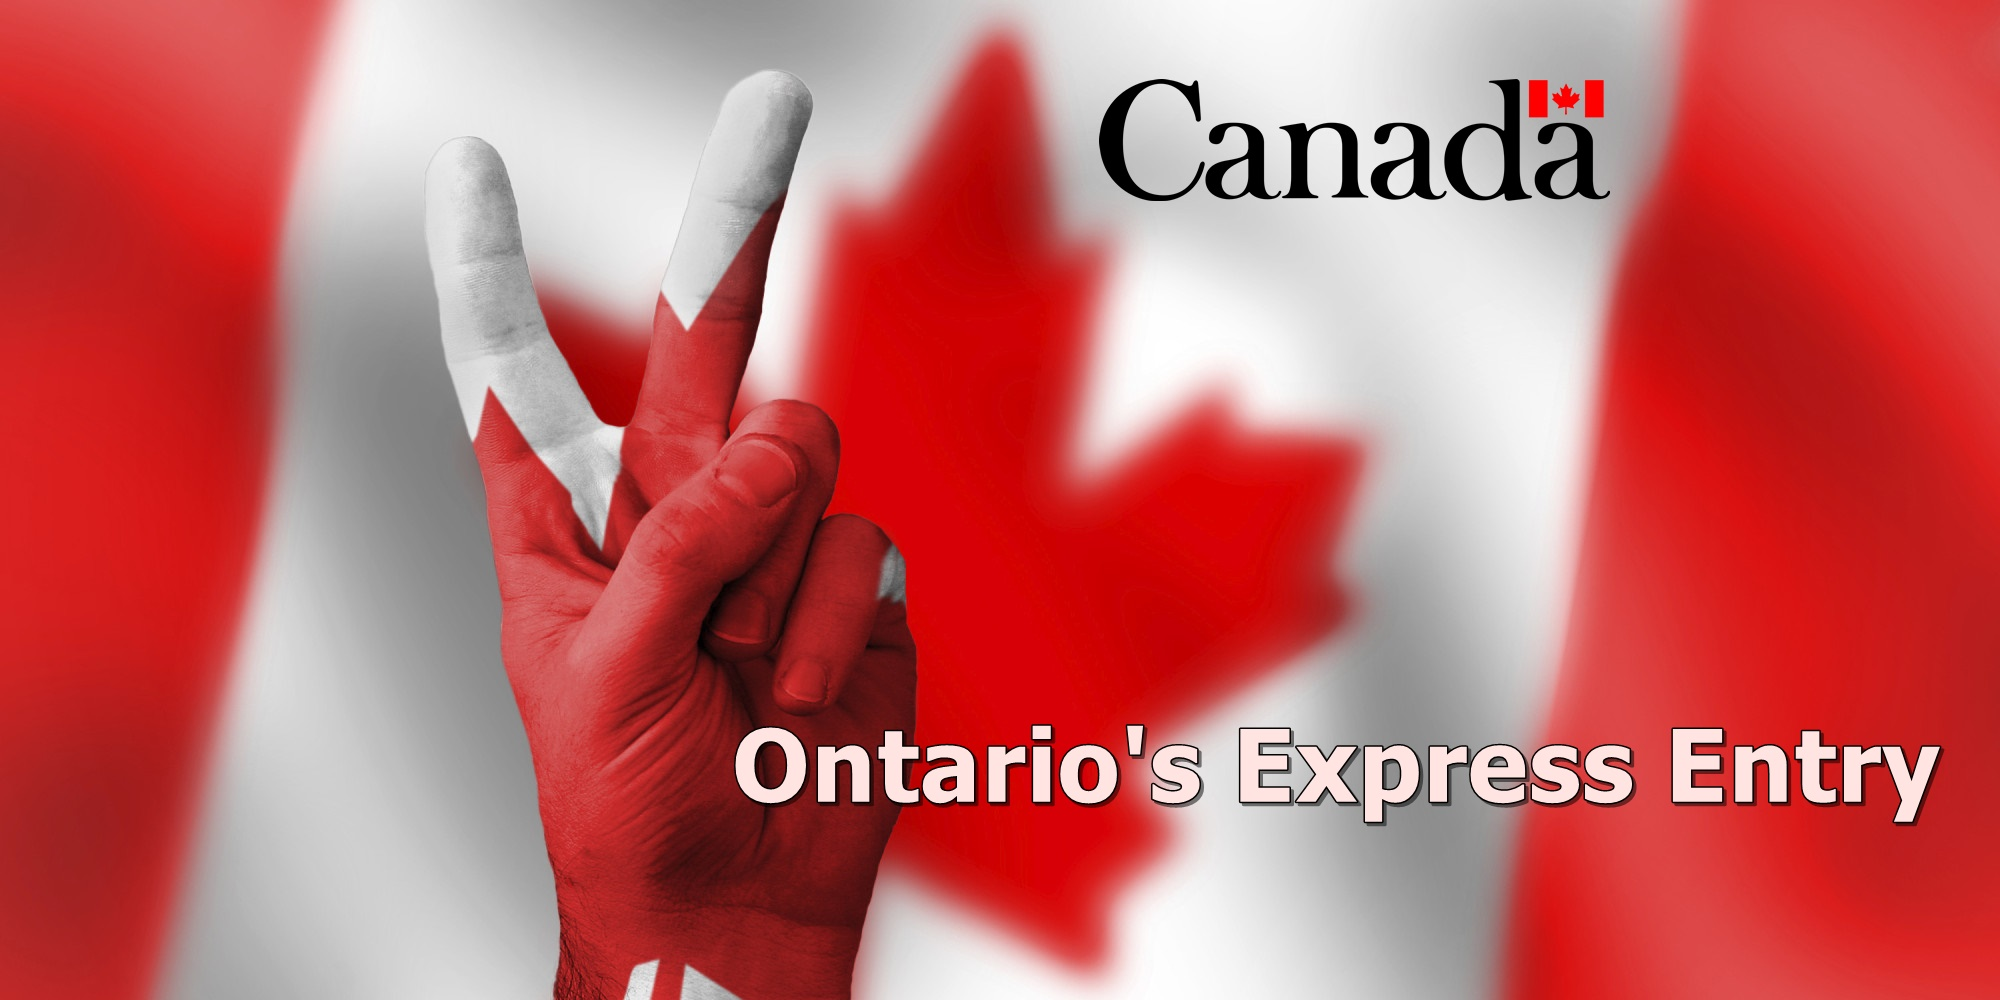 What does Ontario's Express Entry (Skilled Trades) Mean?